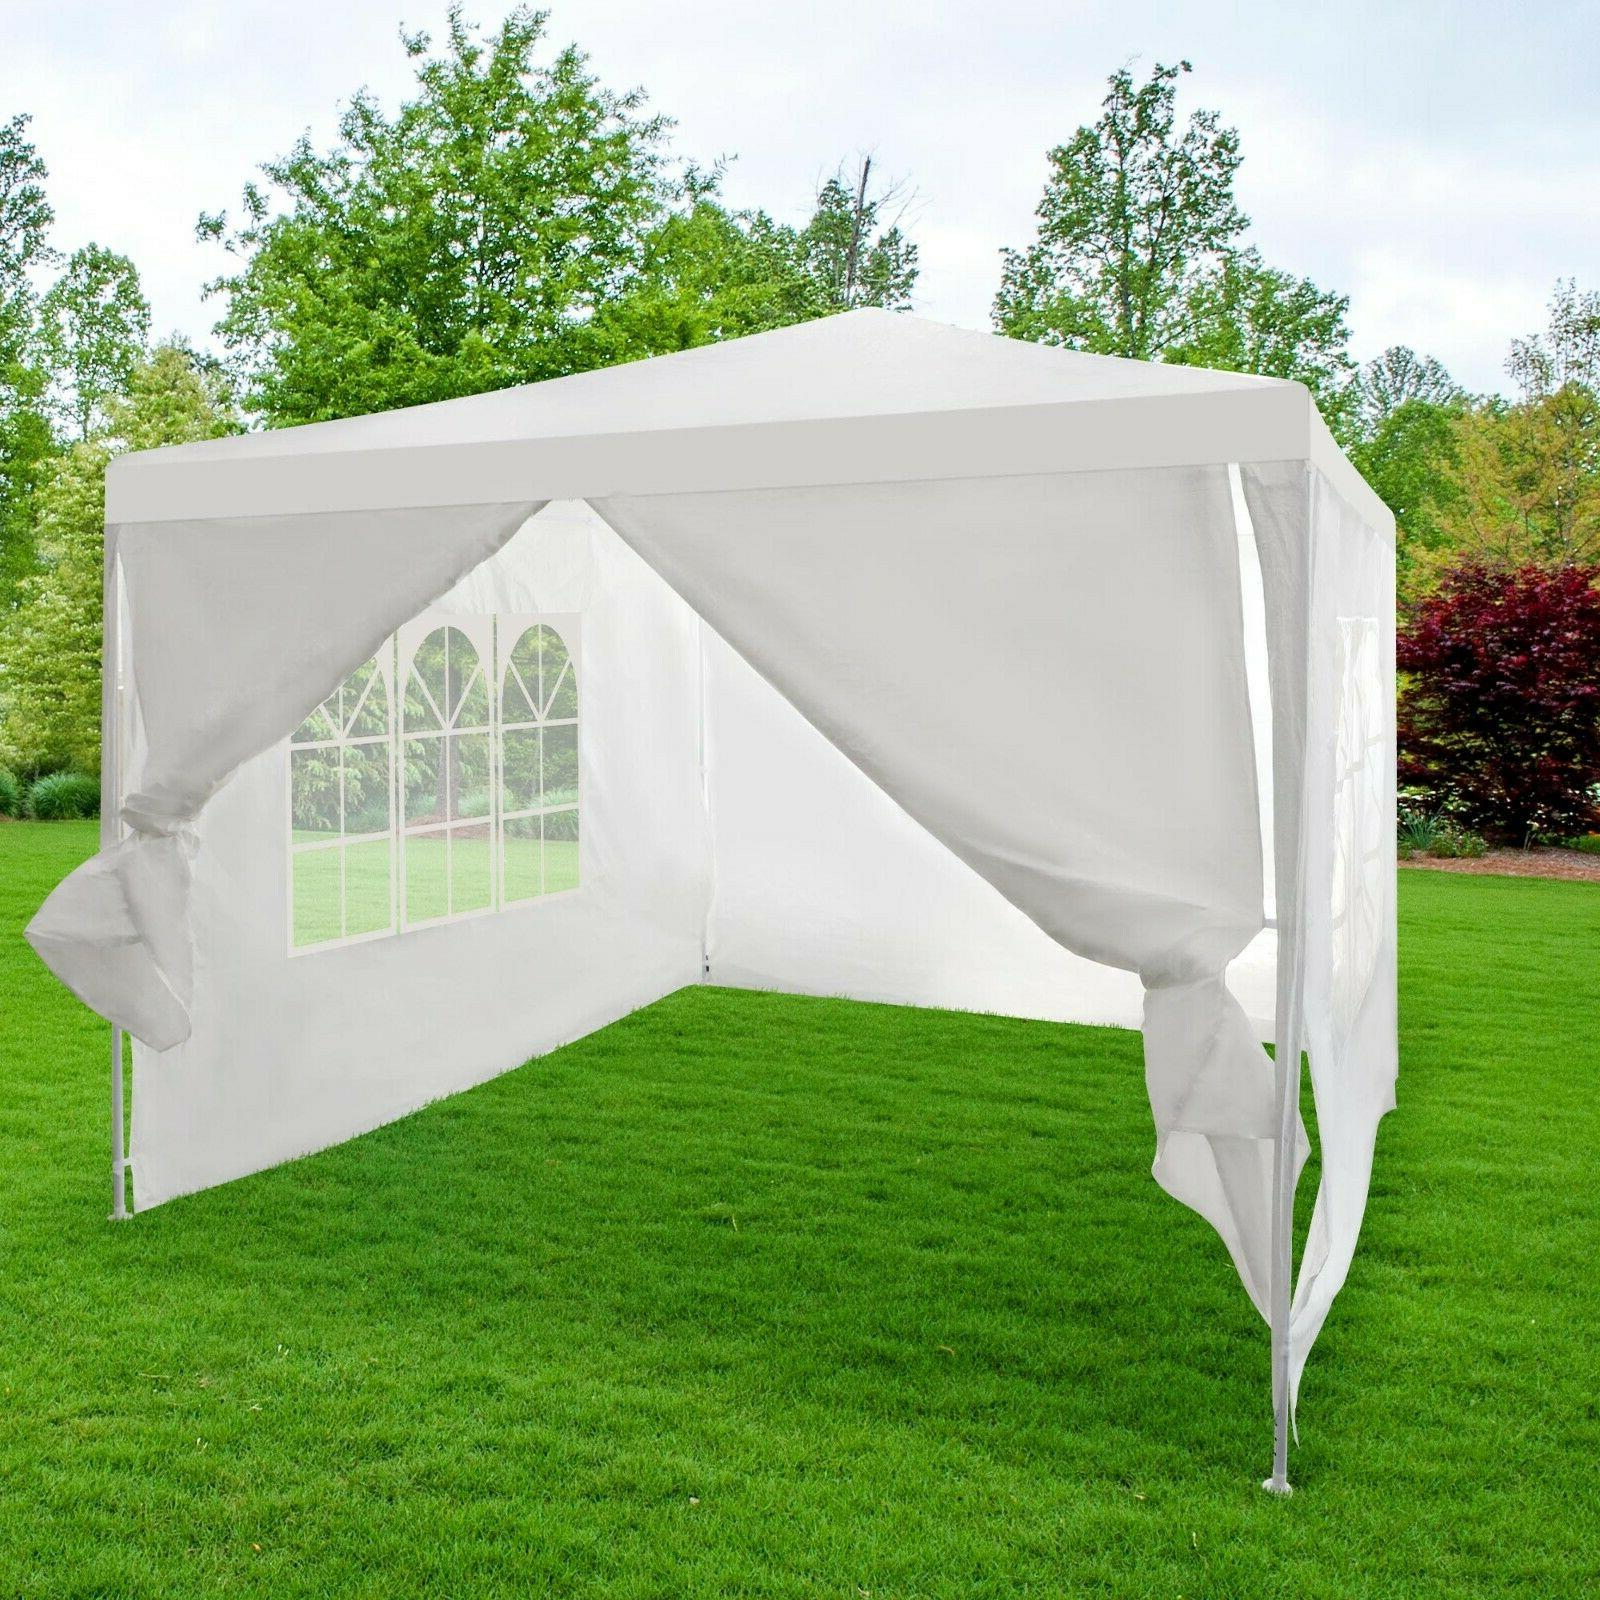 10' by Patio Sunshade Removable sides